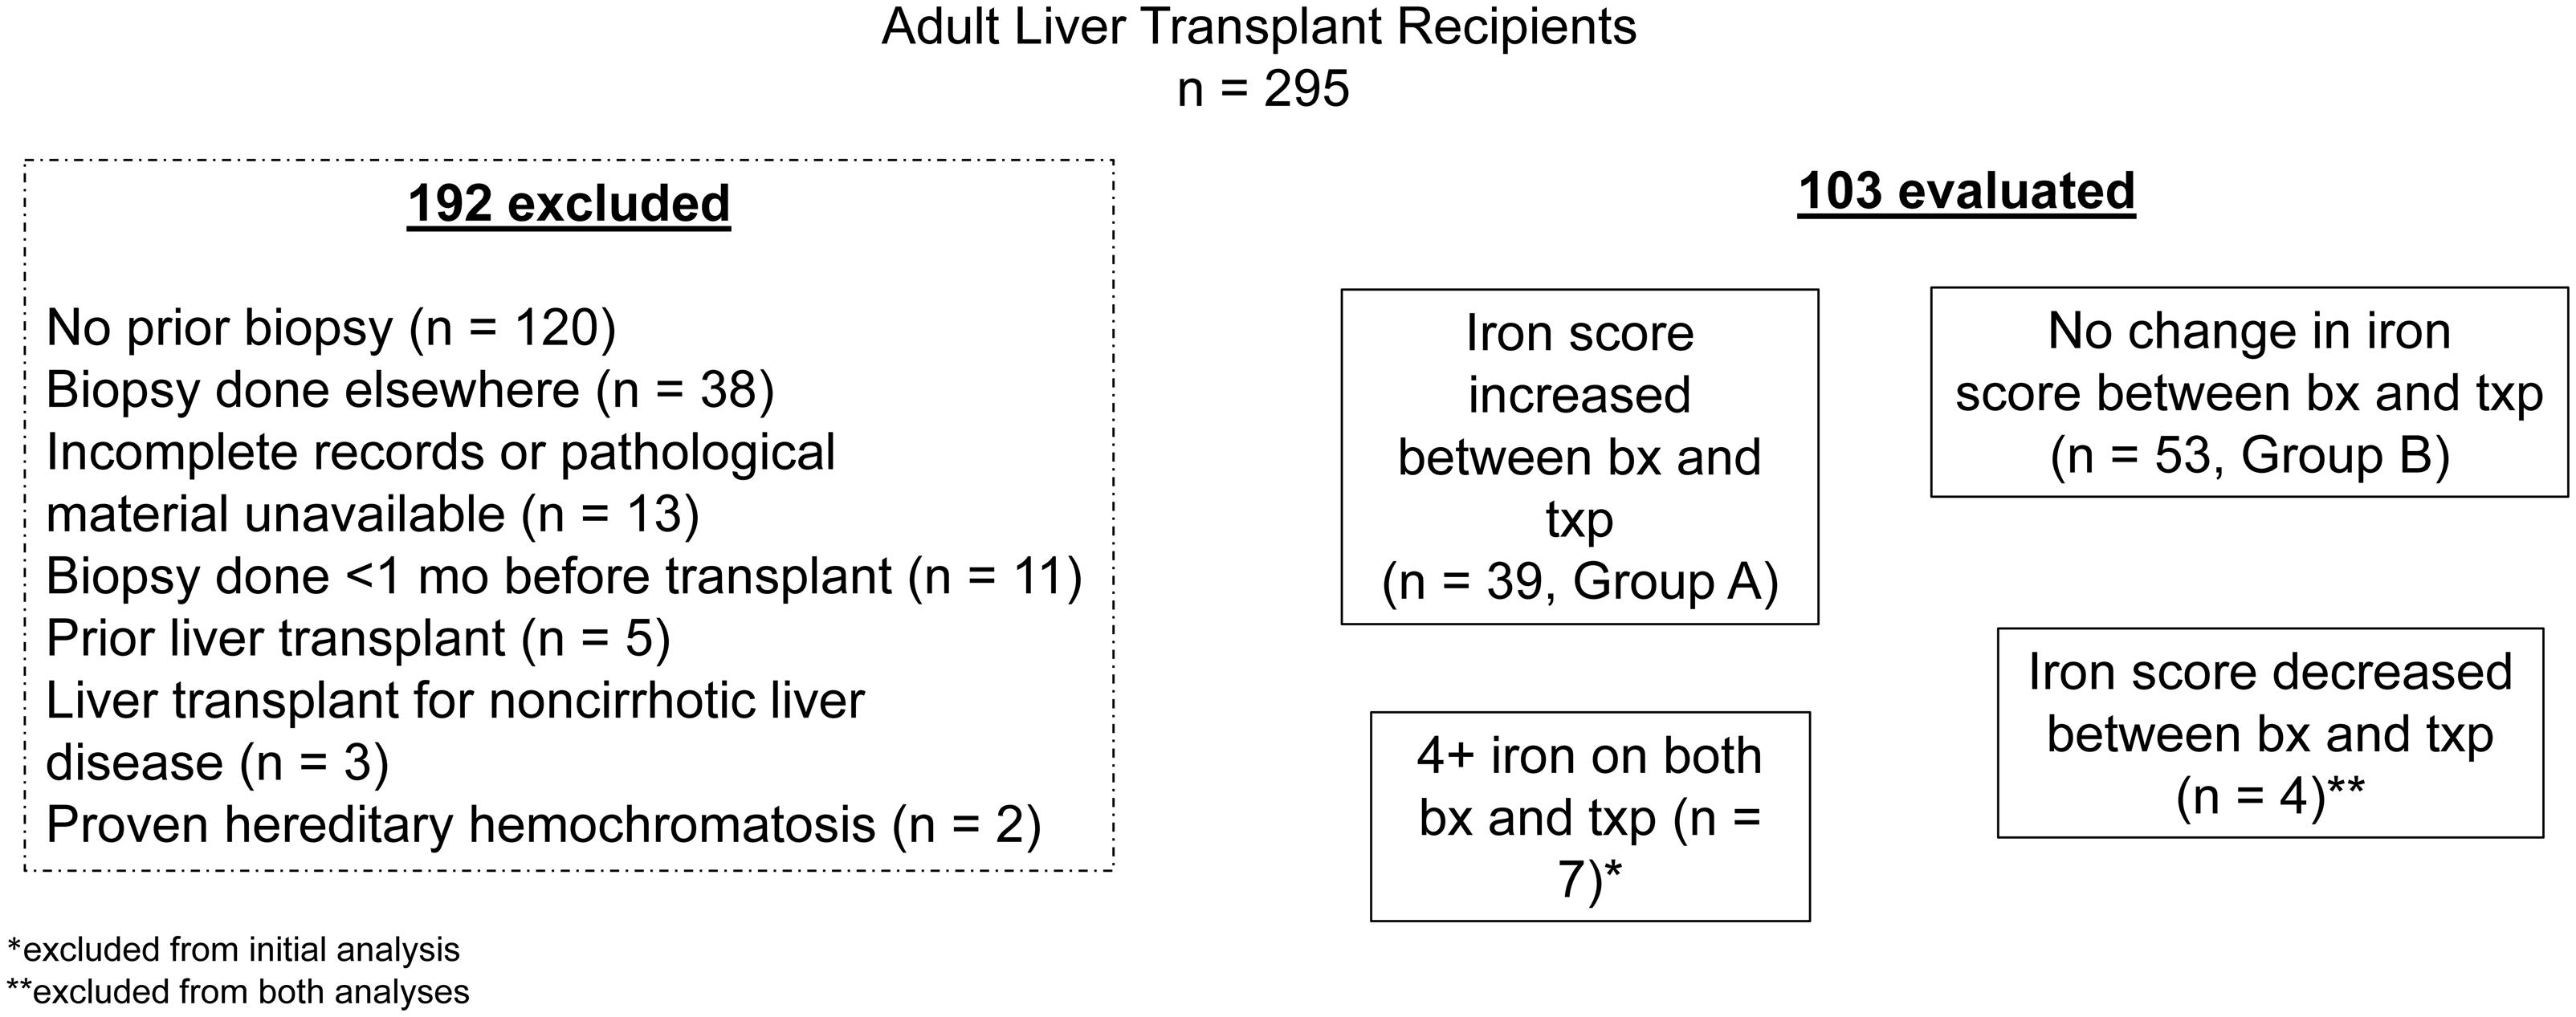 Disposition of transplant recipients considered for inclusion in the study.